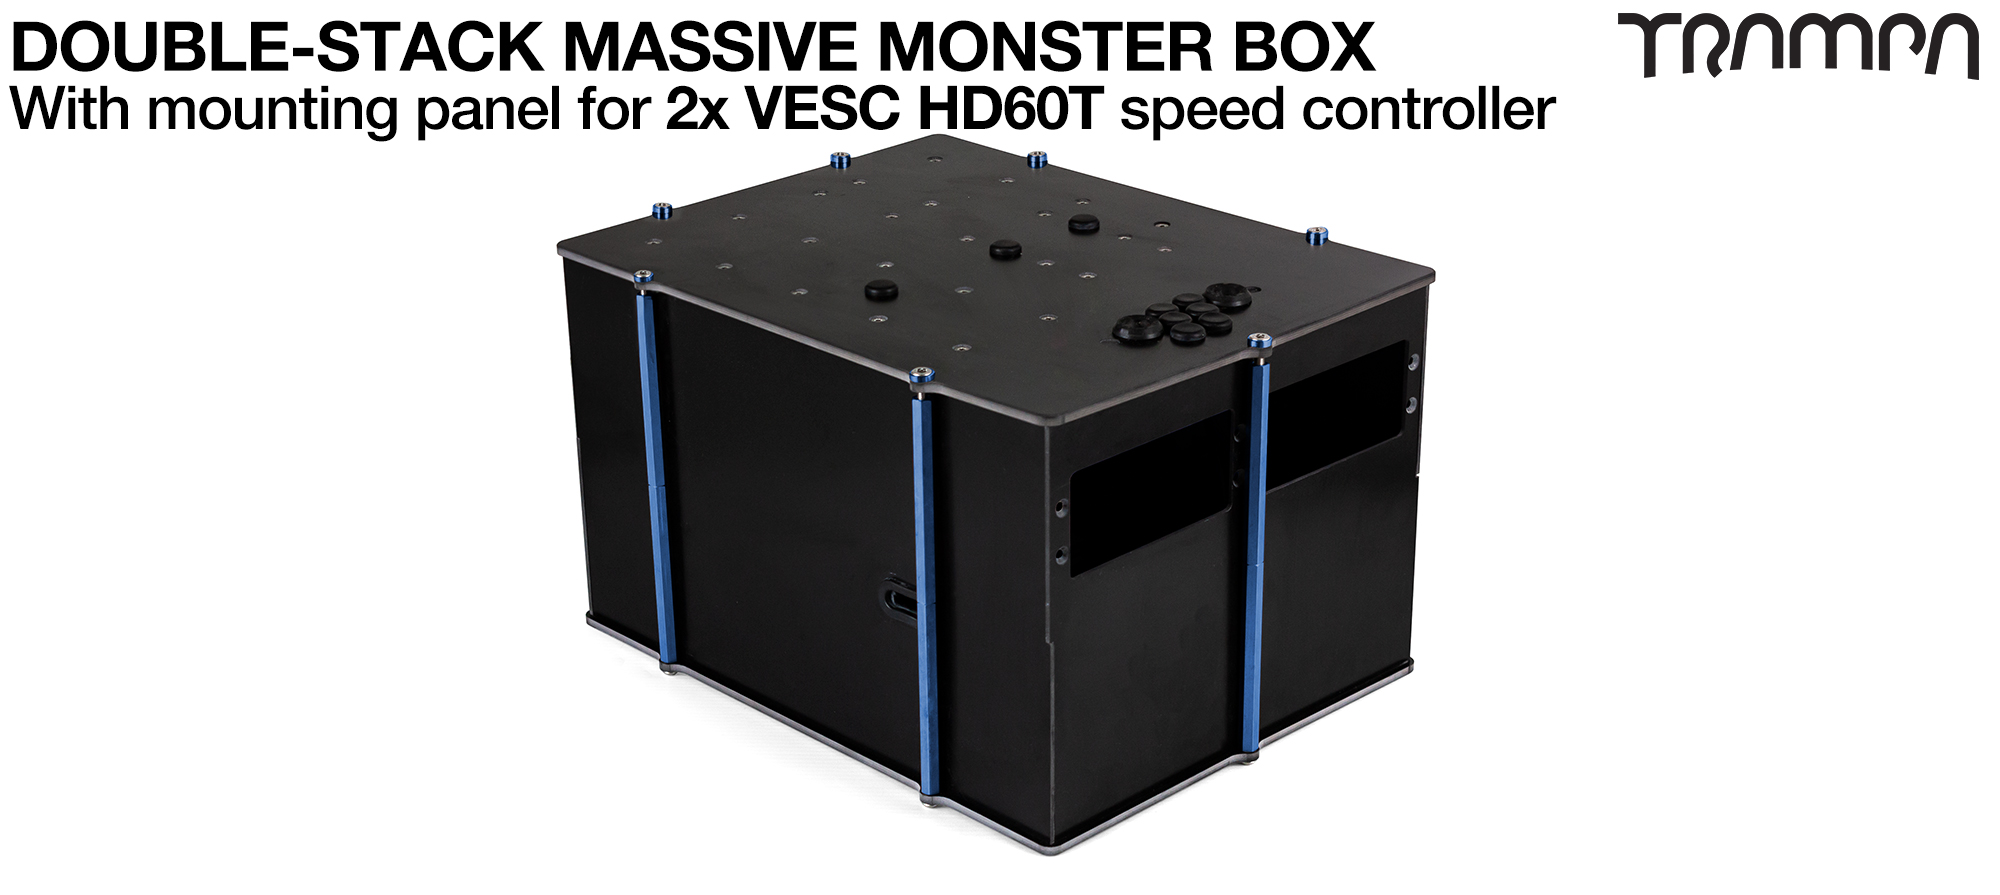 4WD DOUBLE STACK MASSIVE MONSTER Box with 2x VESC HD-60Twin Mounting Panel